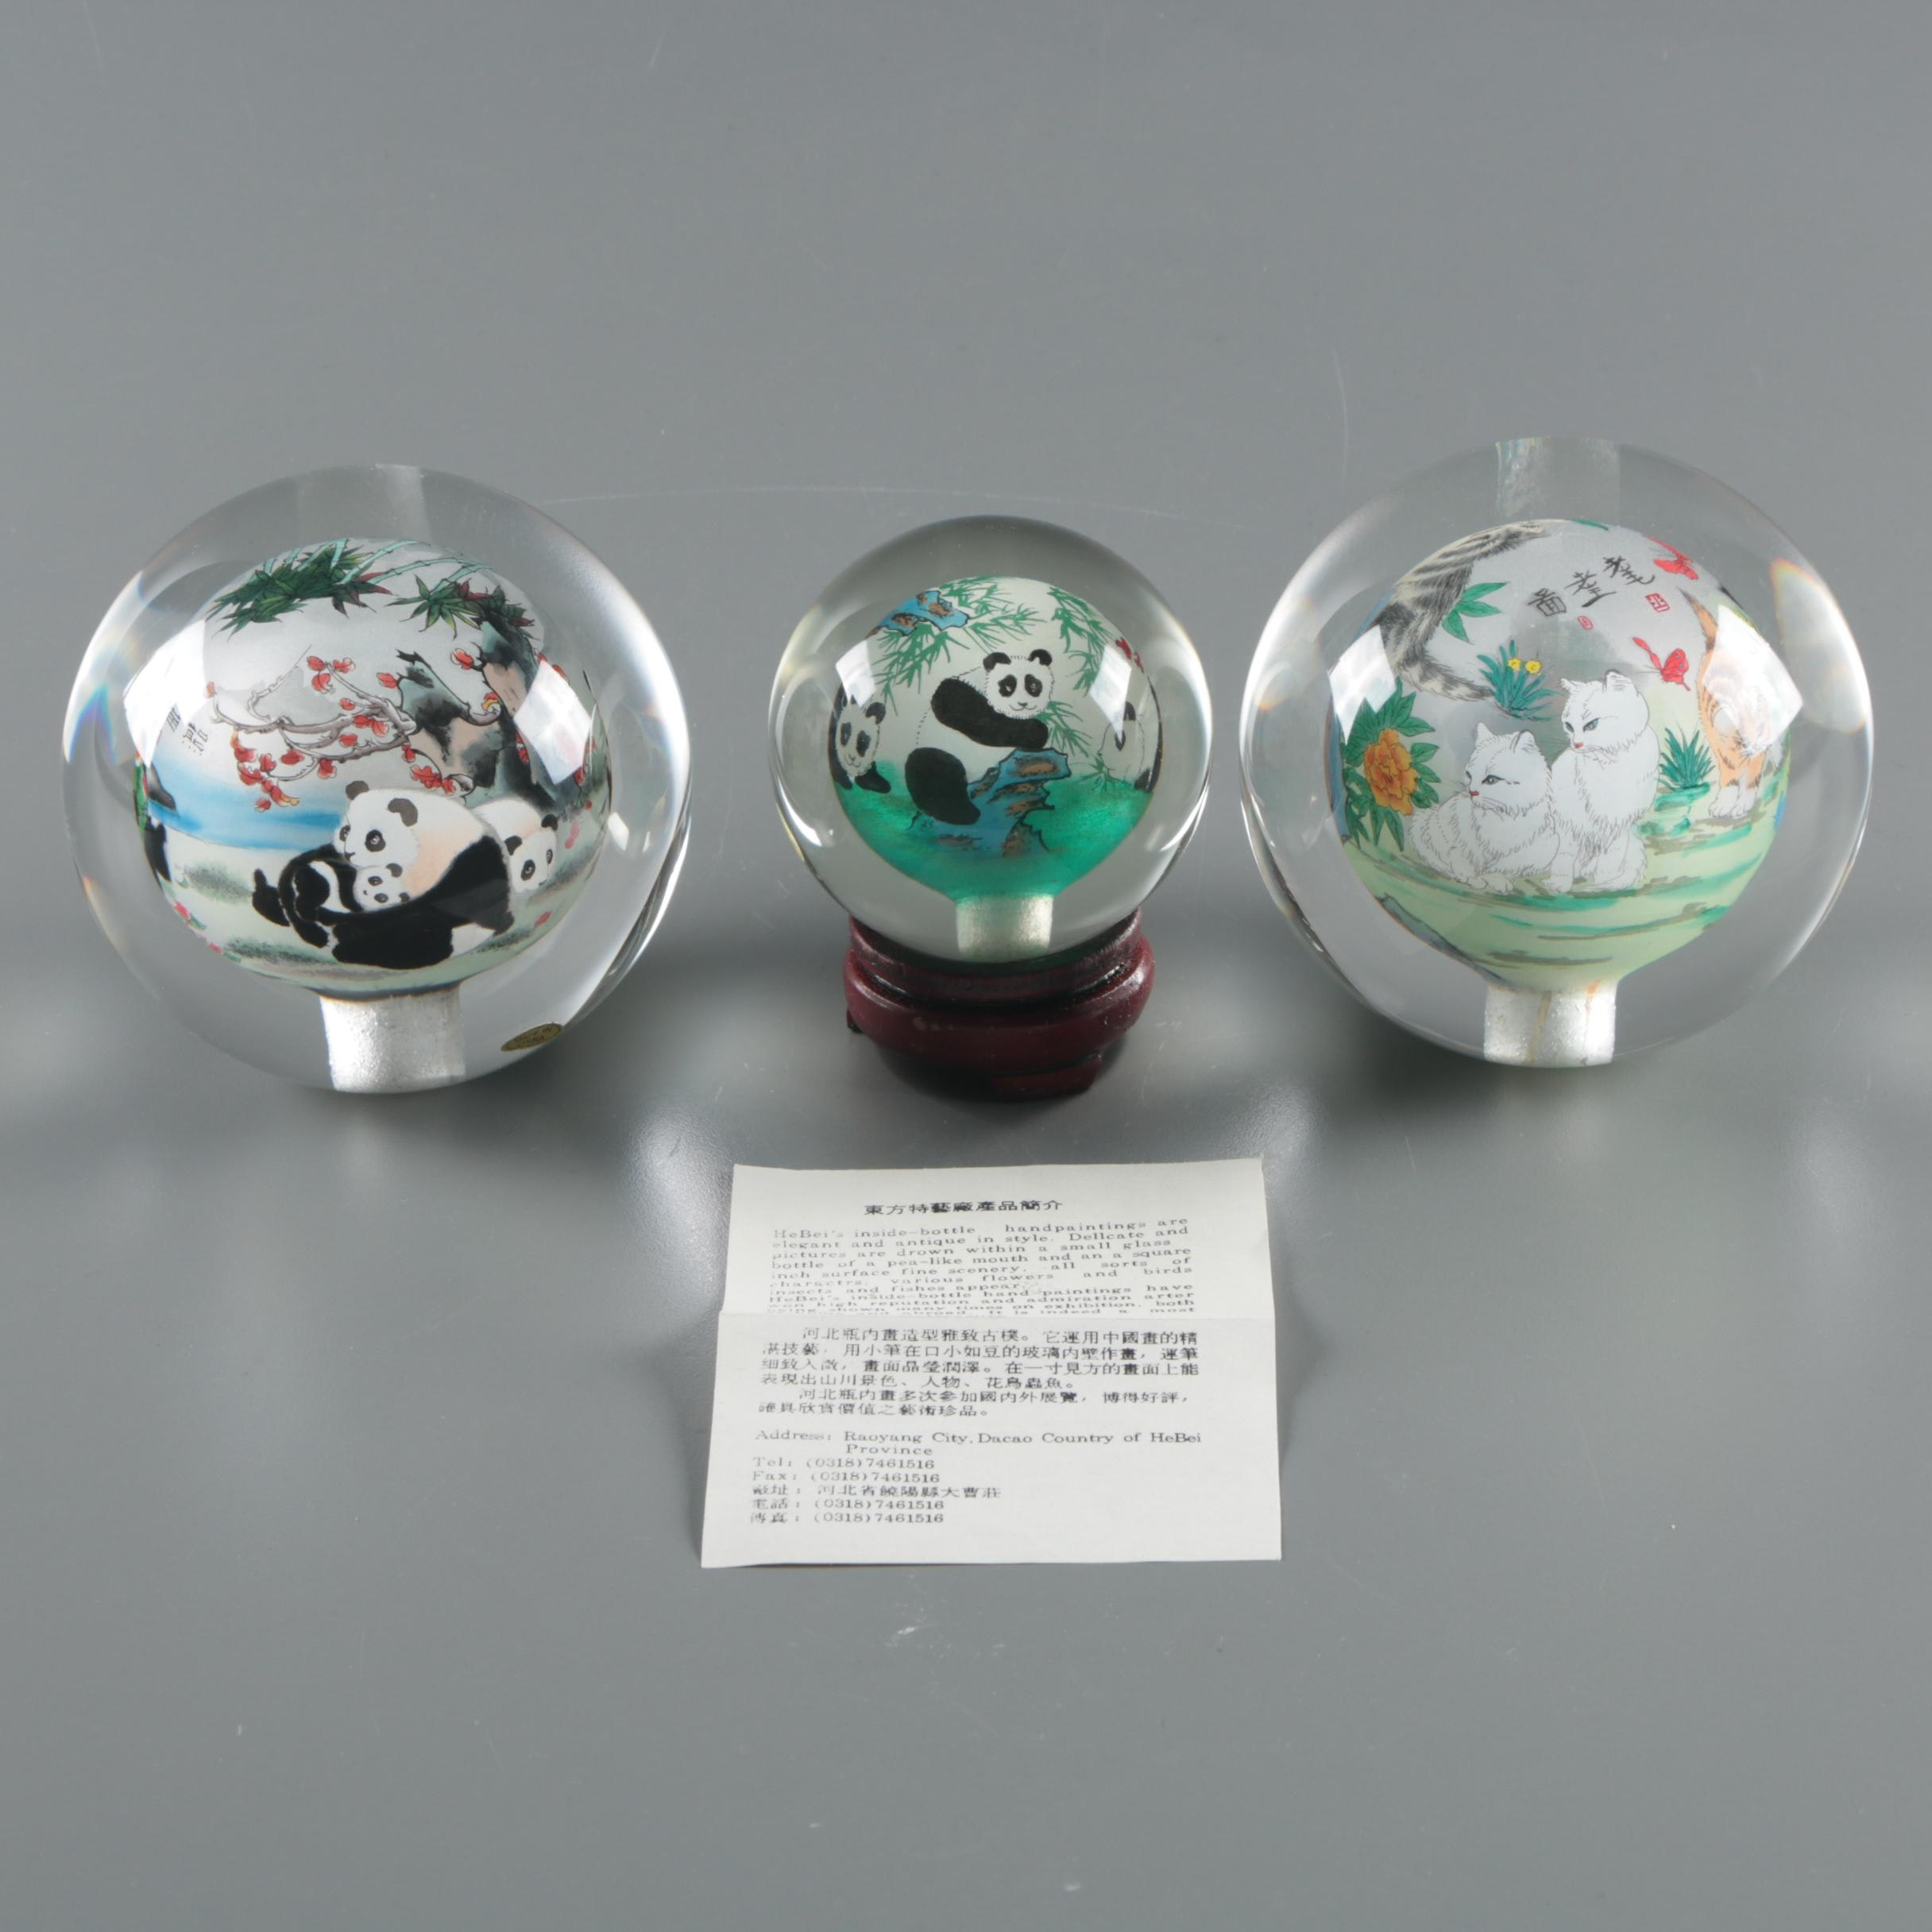 Hand-Painted Chinese Glass Orbs from Hebei Province